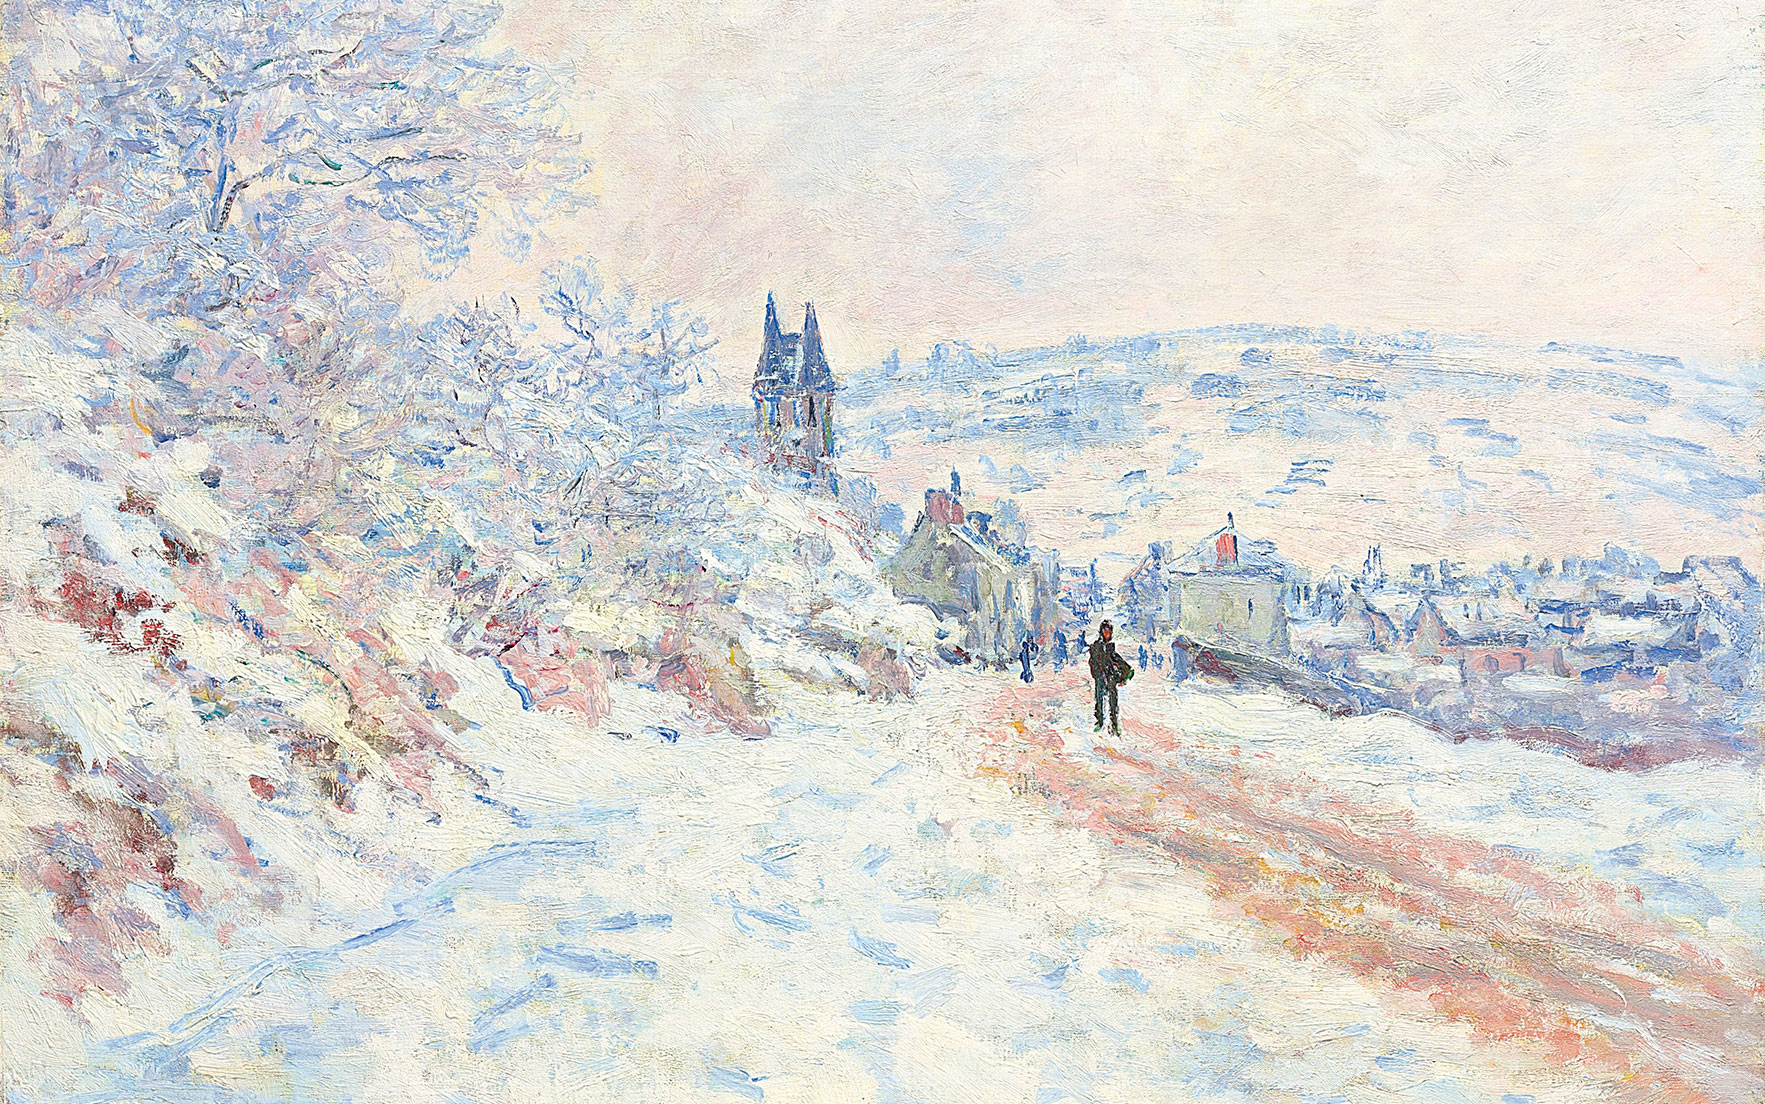 Works by Monet, Cézanne